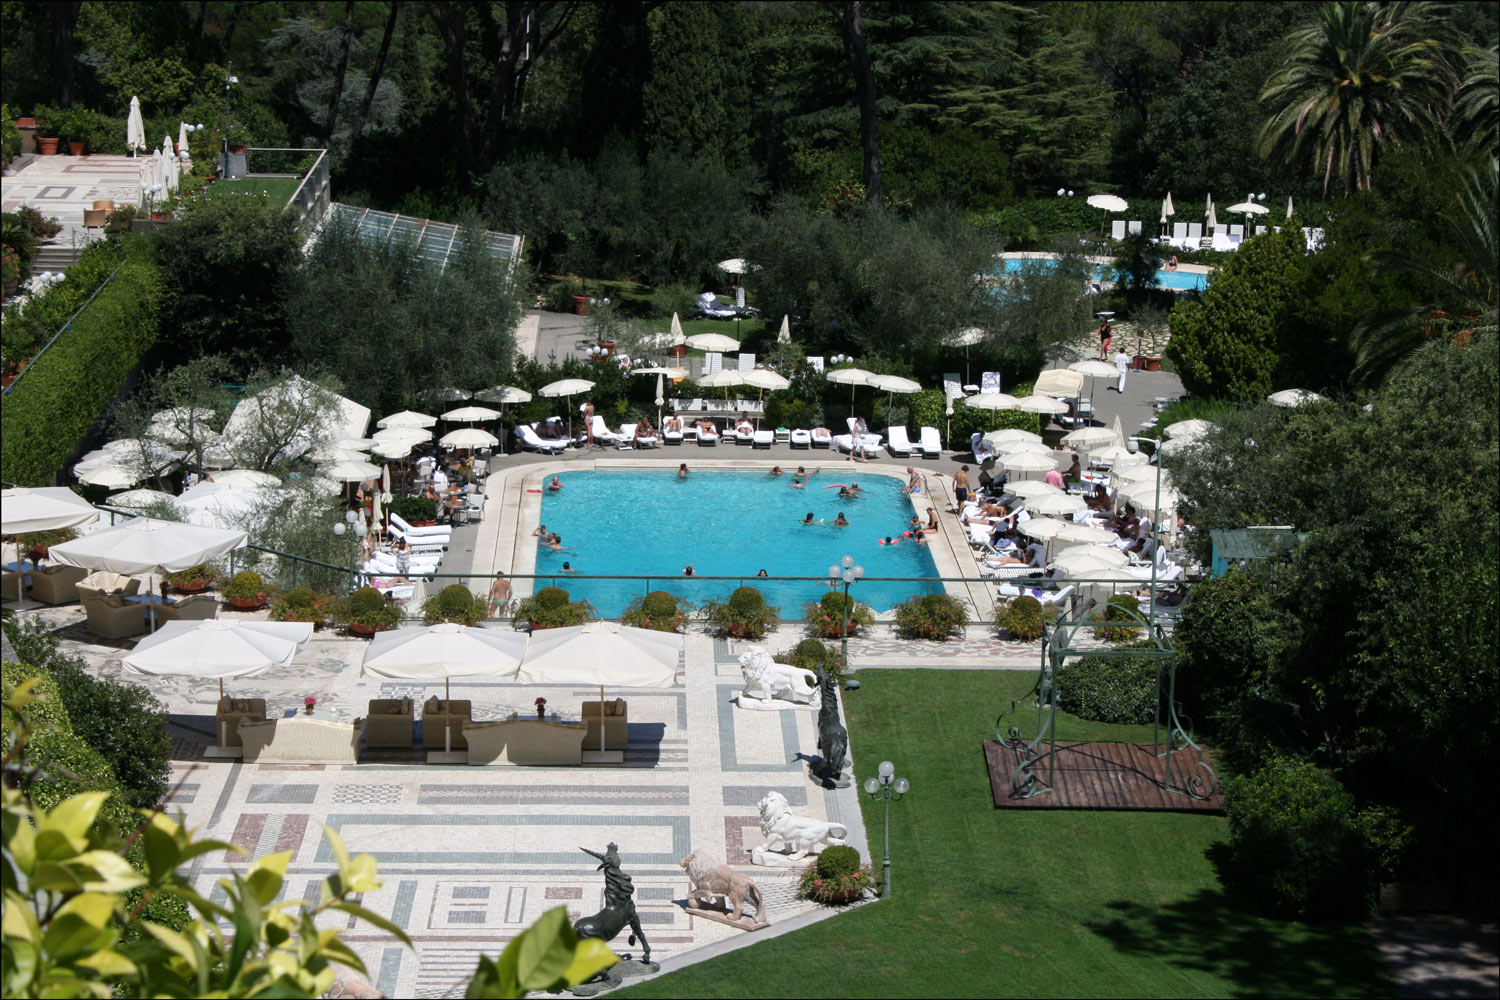 Patio and Pool at the Rome Cavalieri Hotel